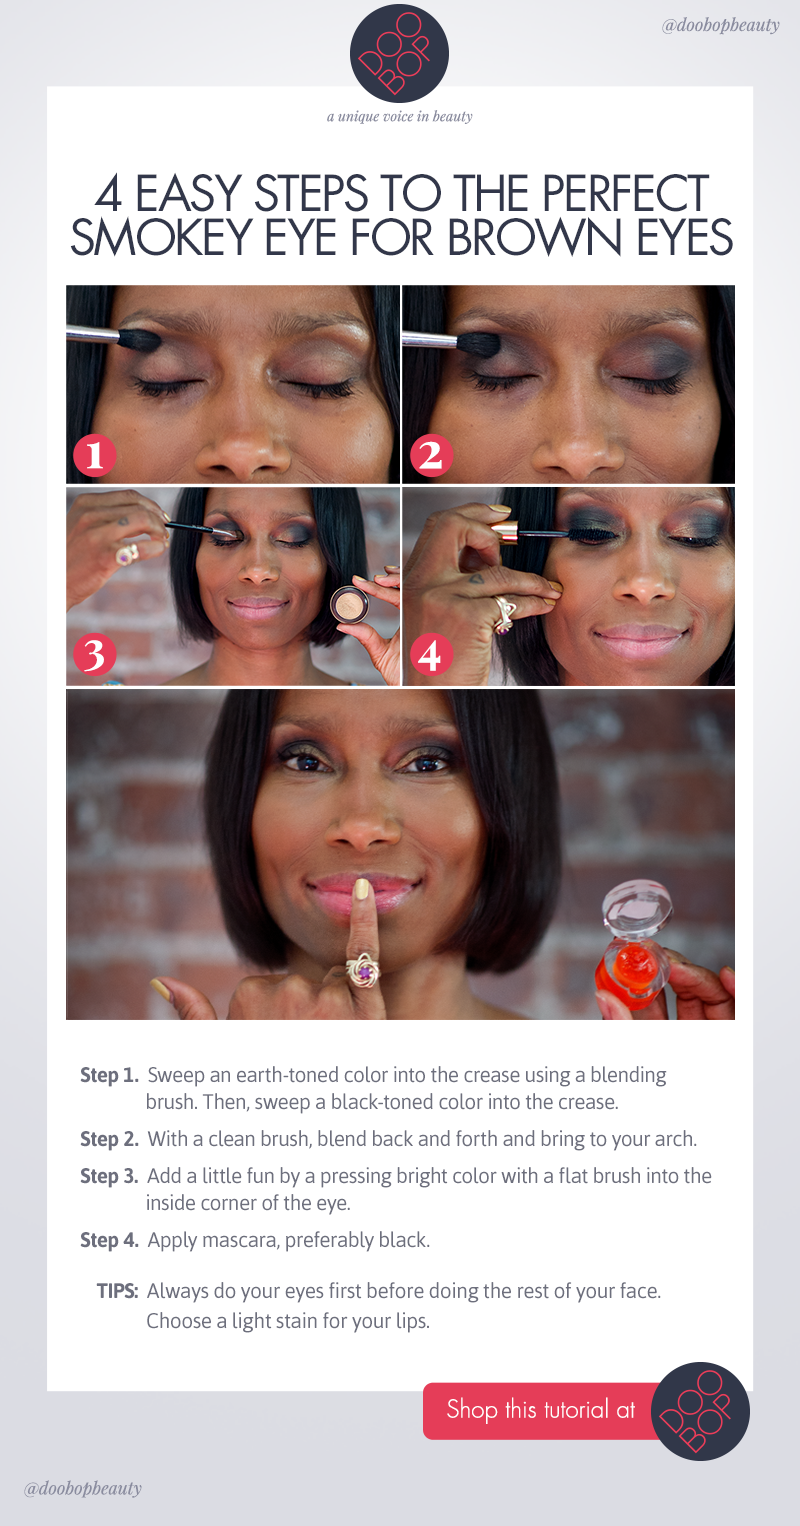 Finally easy steps to the perfect smokey eye for brown eyes